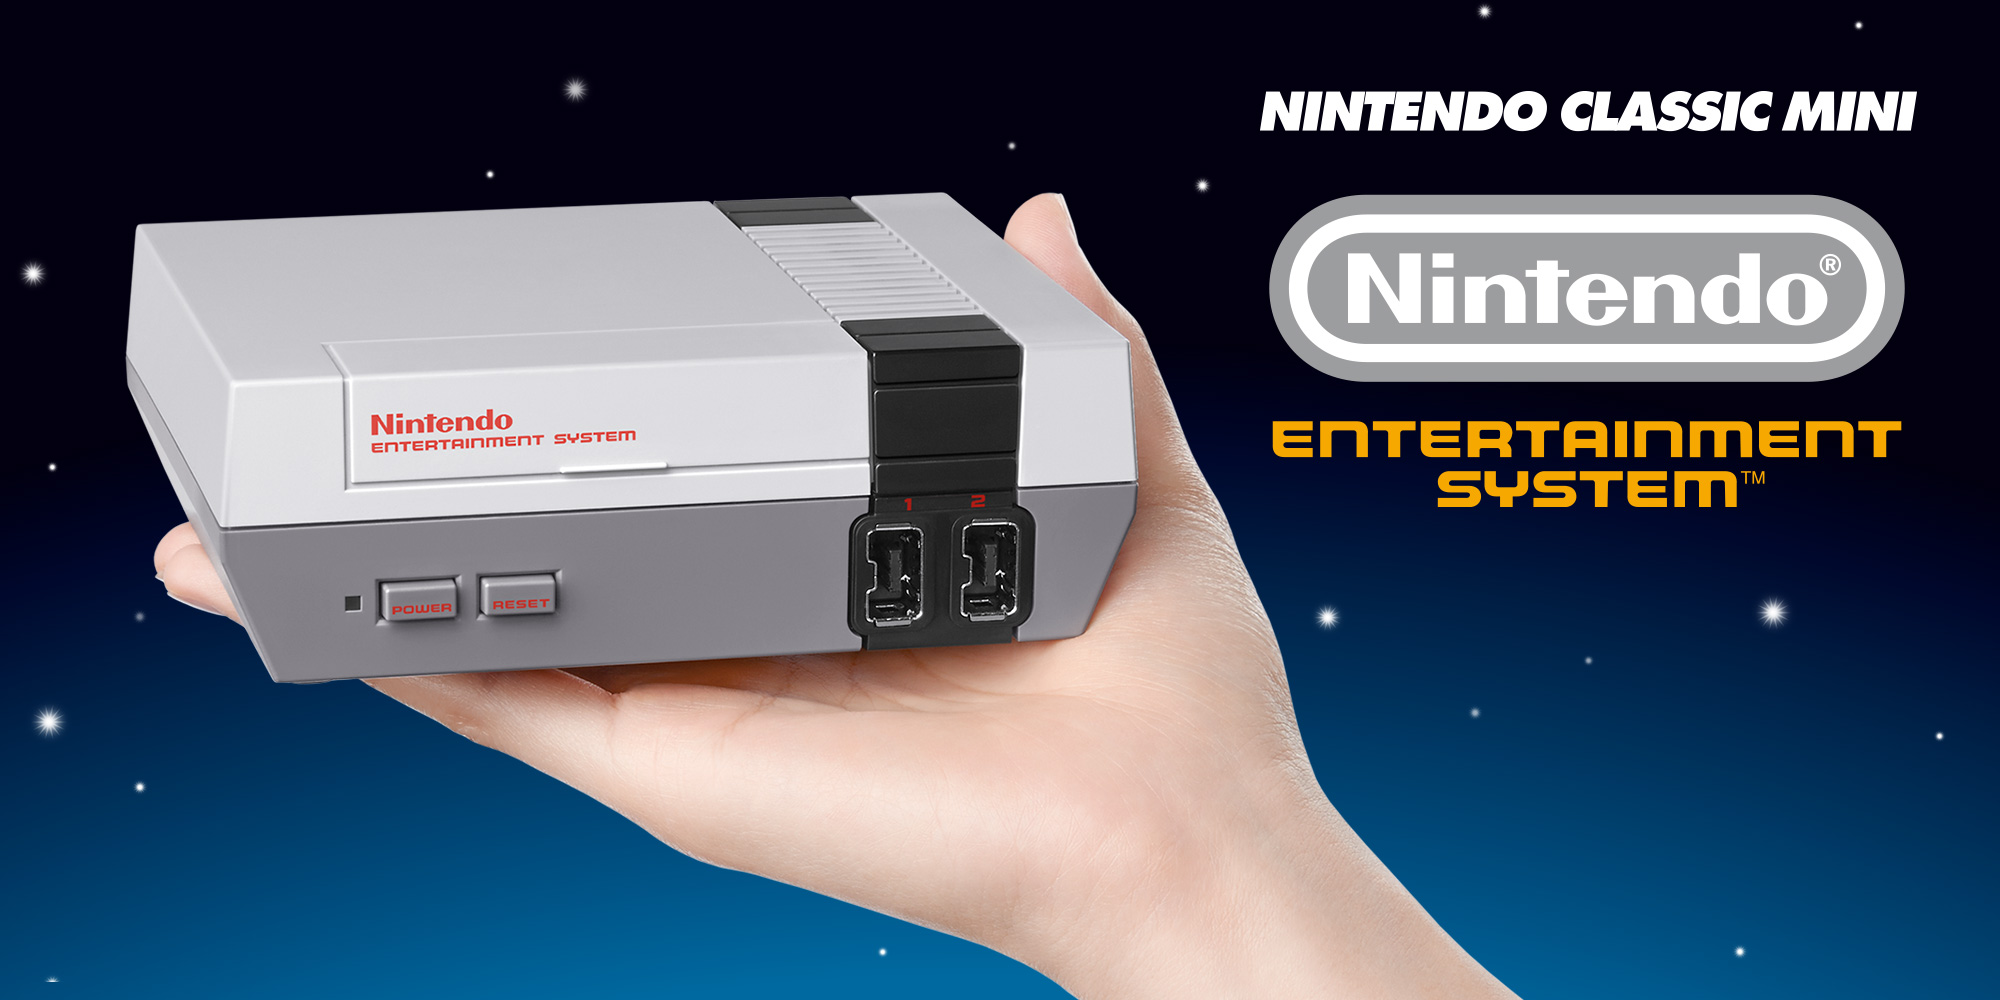 http://cdn02.nintendo-europe.com/media/images/10_share_images/others_3/H2x1_NintendoClassicMiniNES_Announcement.jpg